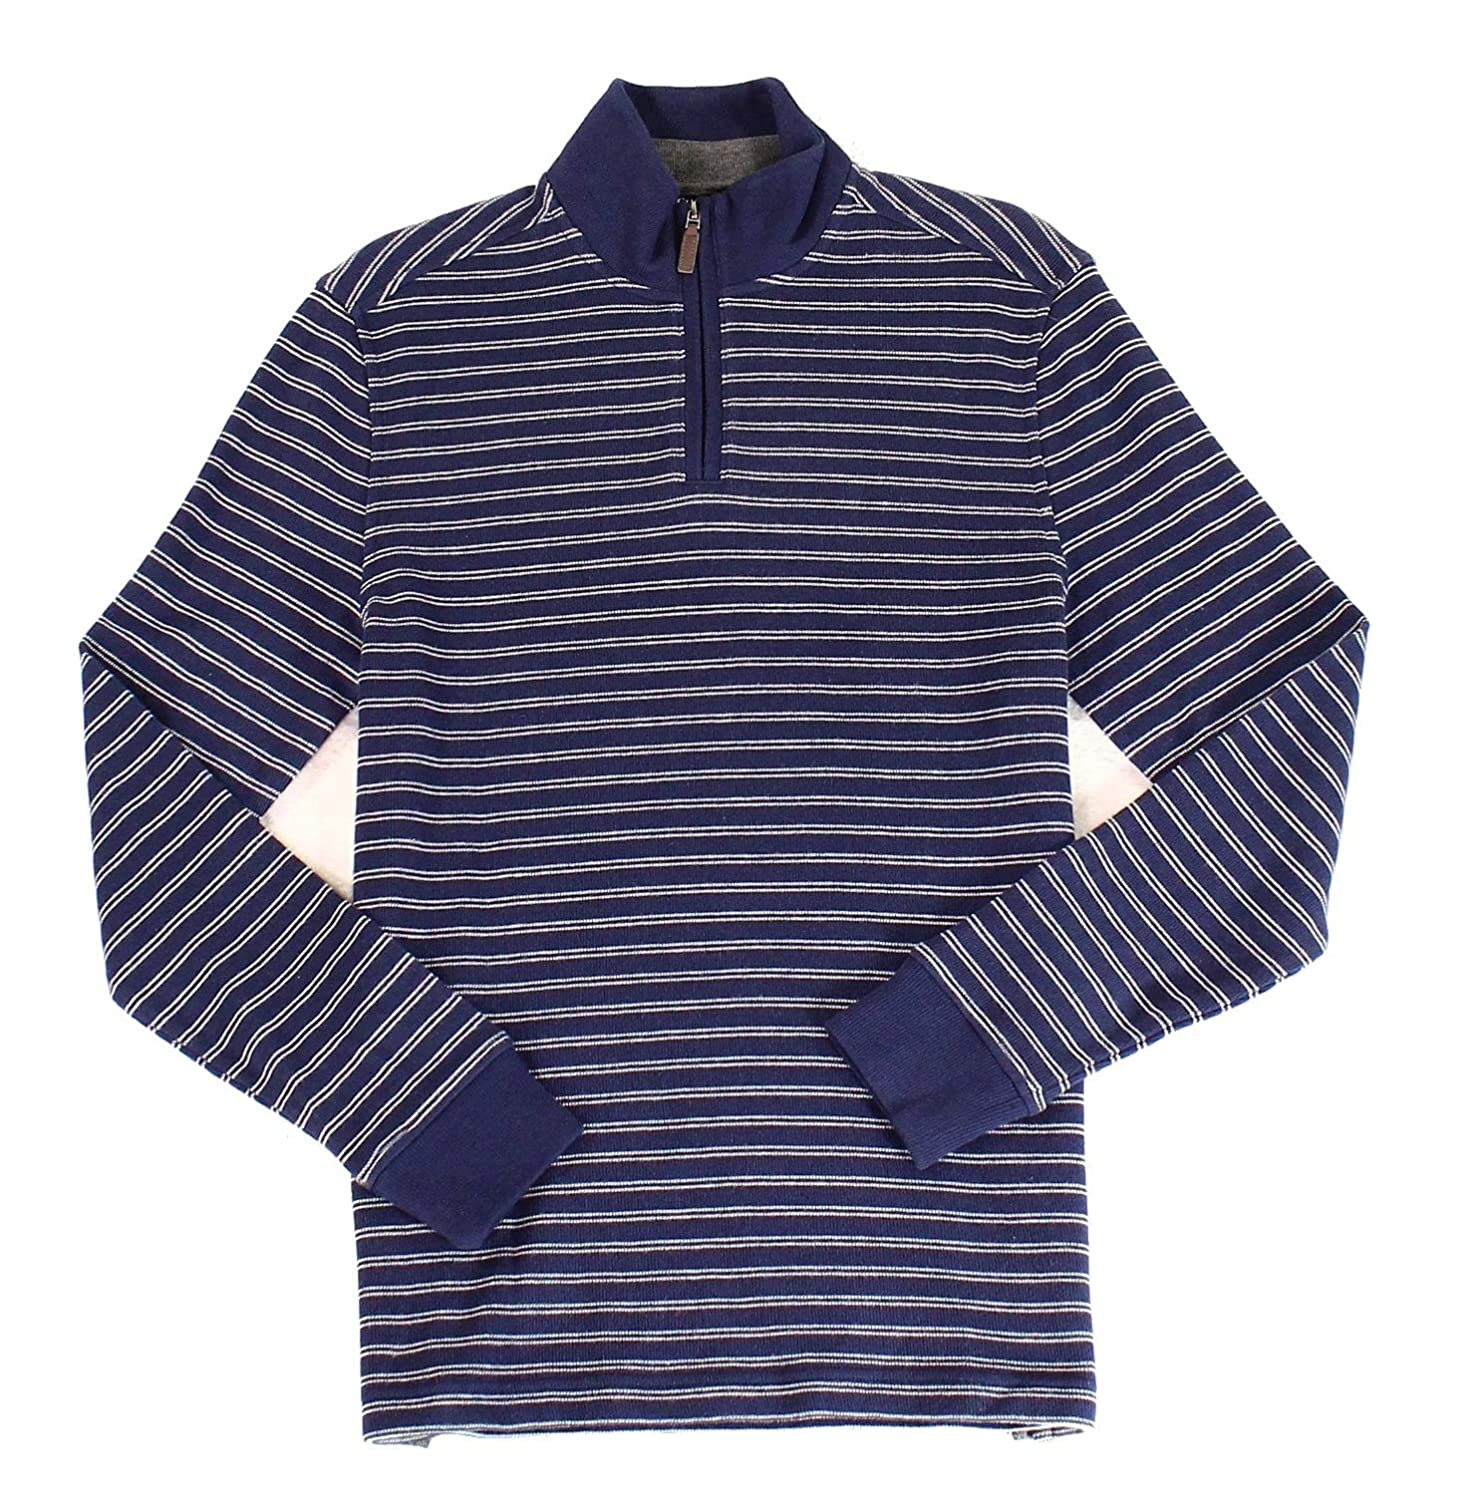 Club Room Mens Striped Knit Pullover Sweater